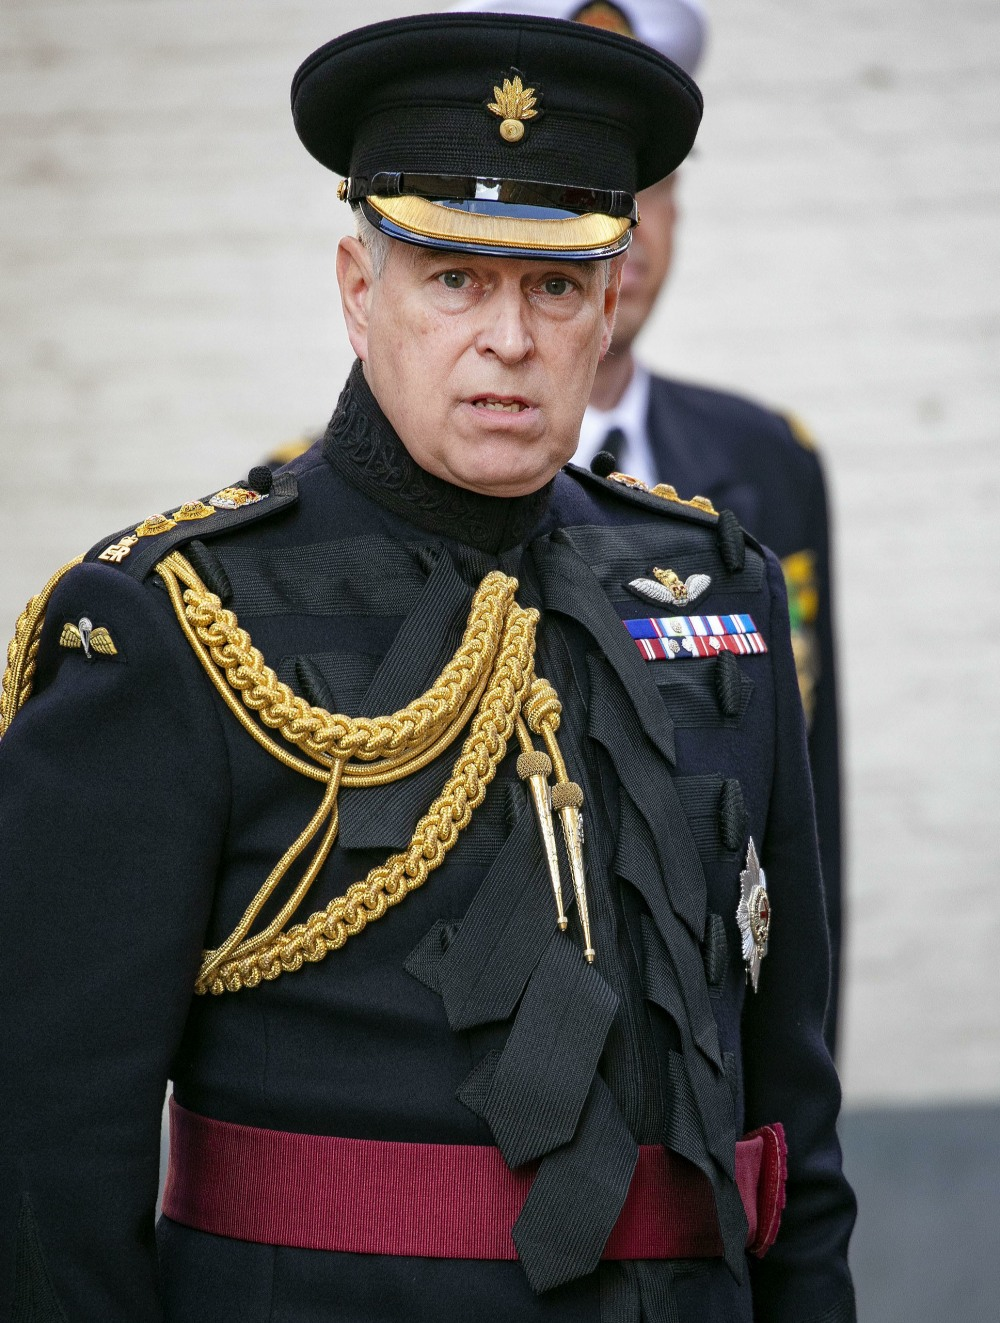 Prince Andrew celebration of 75 years of liberation of Brugge